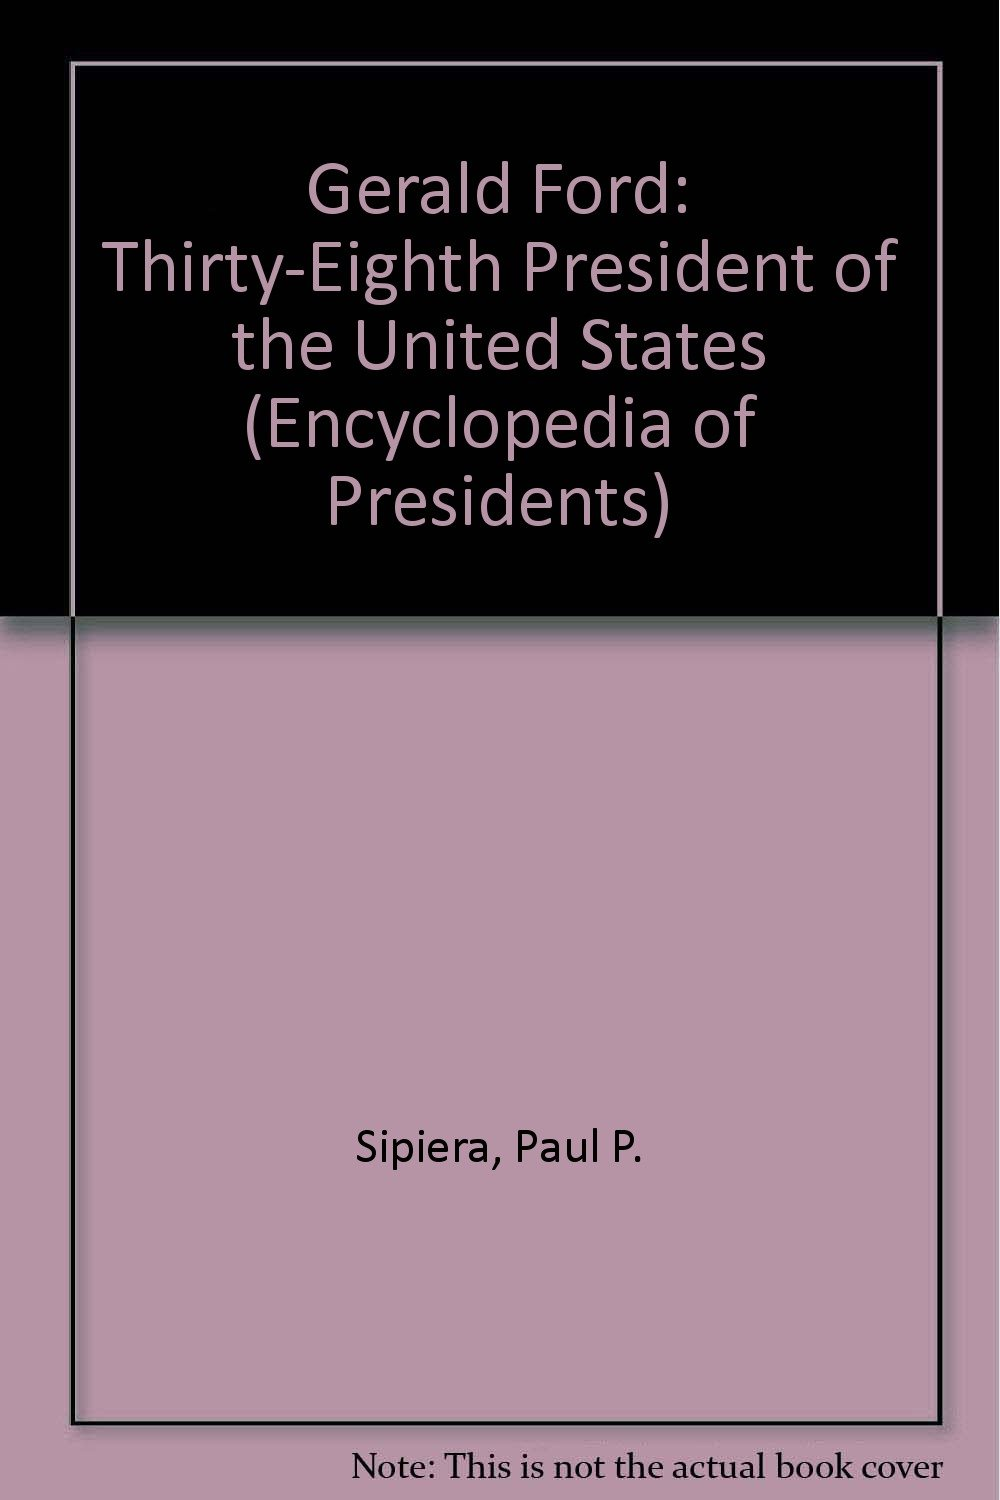 Gerald Ford: Thirty-Eighth President of the United States (Encyclopedia of Presidents)